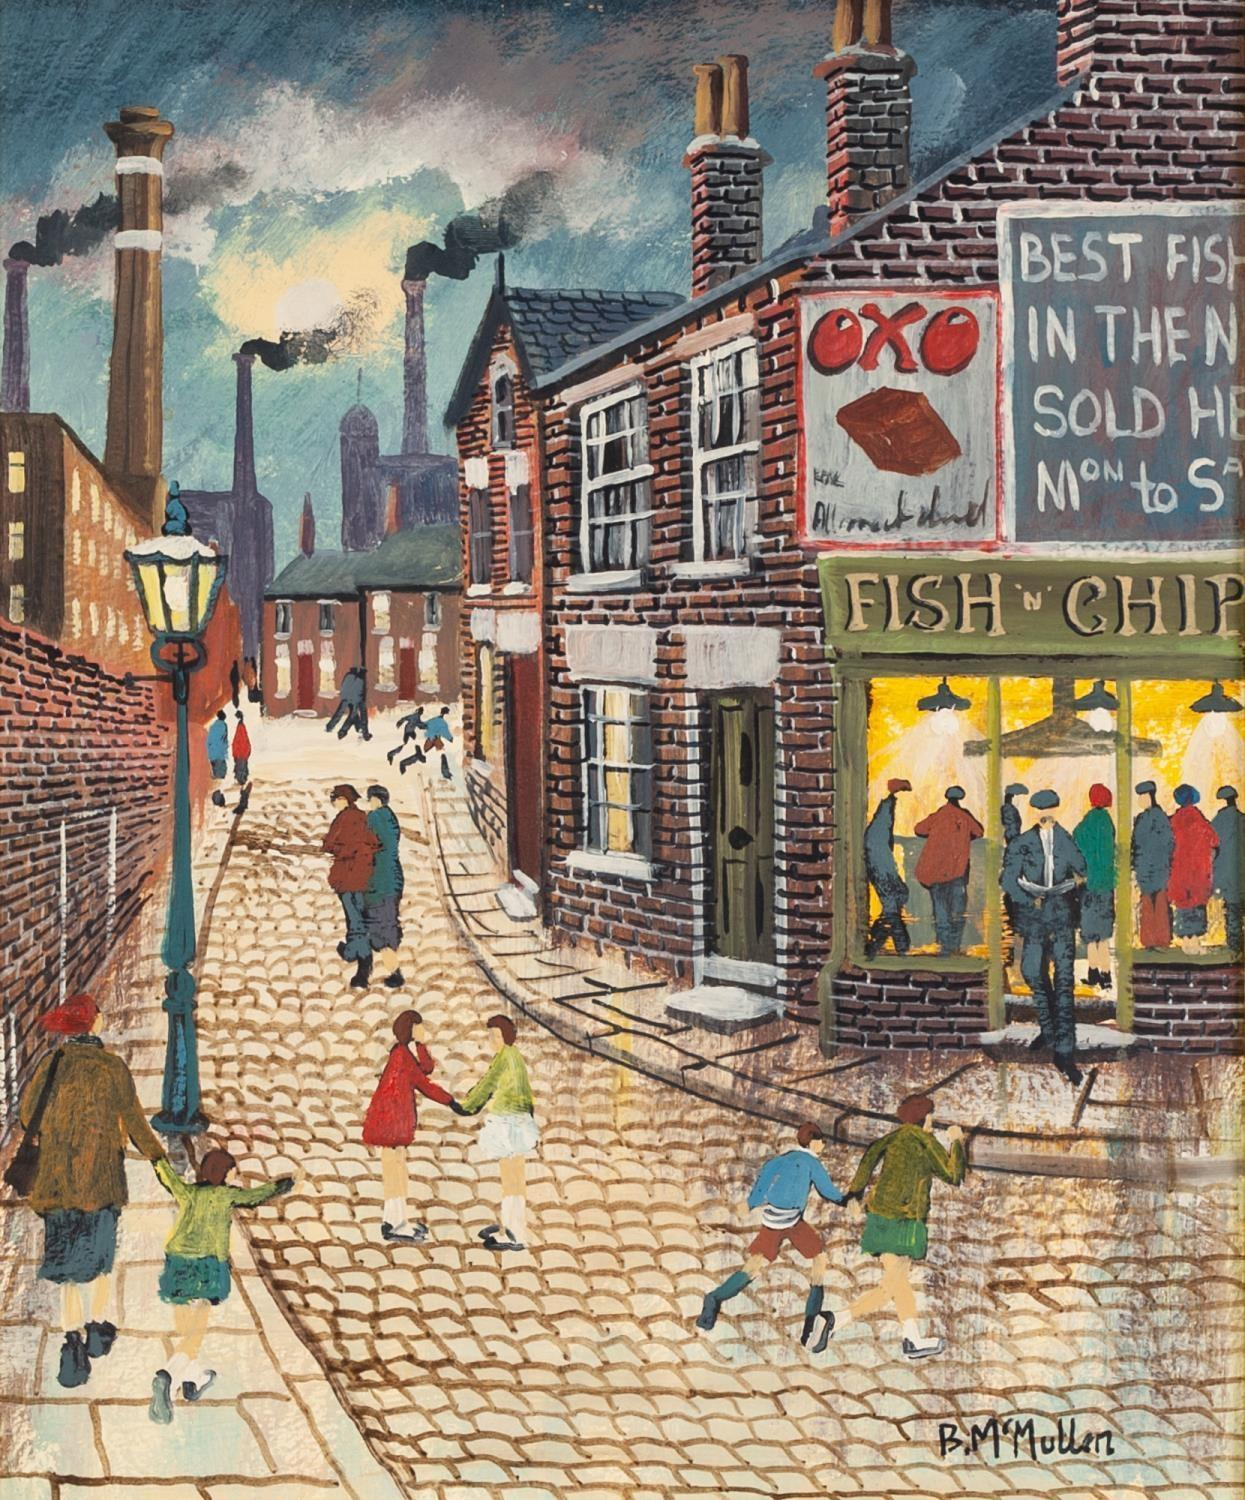 Lot 111 - BERNARD McMULLEN (1952-2015) Acrylic on board Fish & Chip corner shop Signed with dedication to